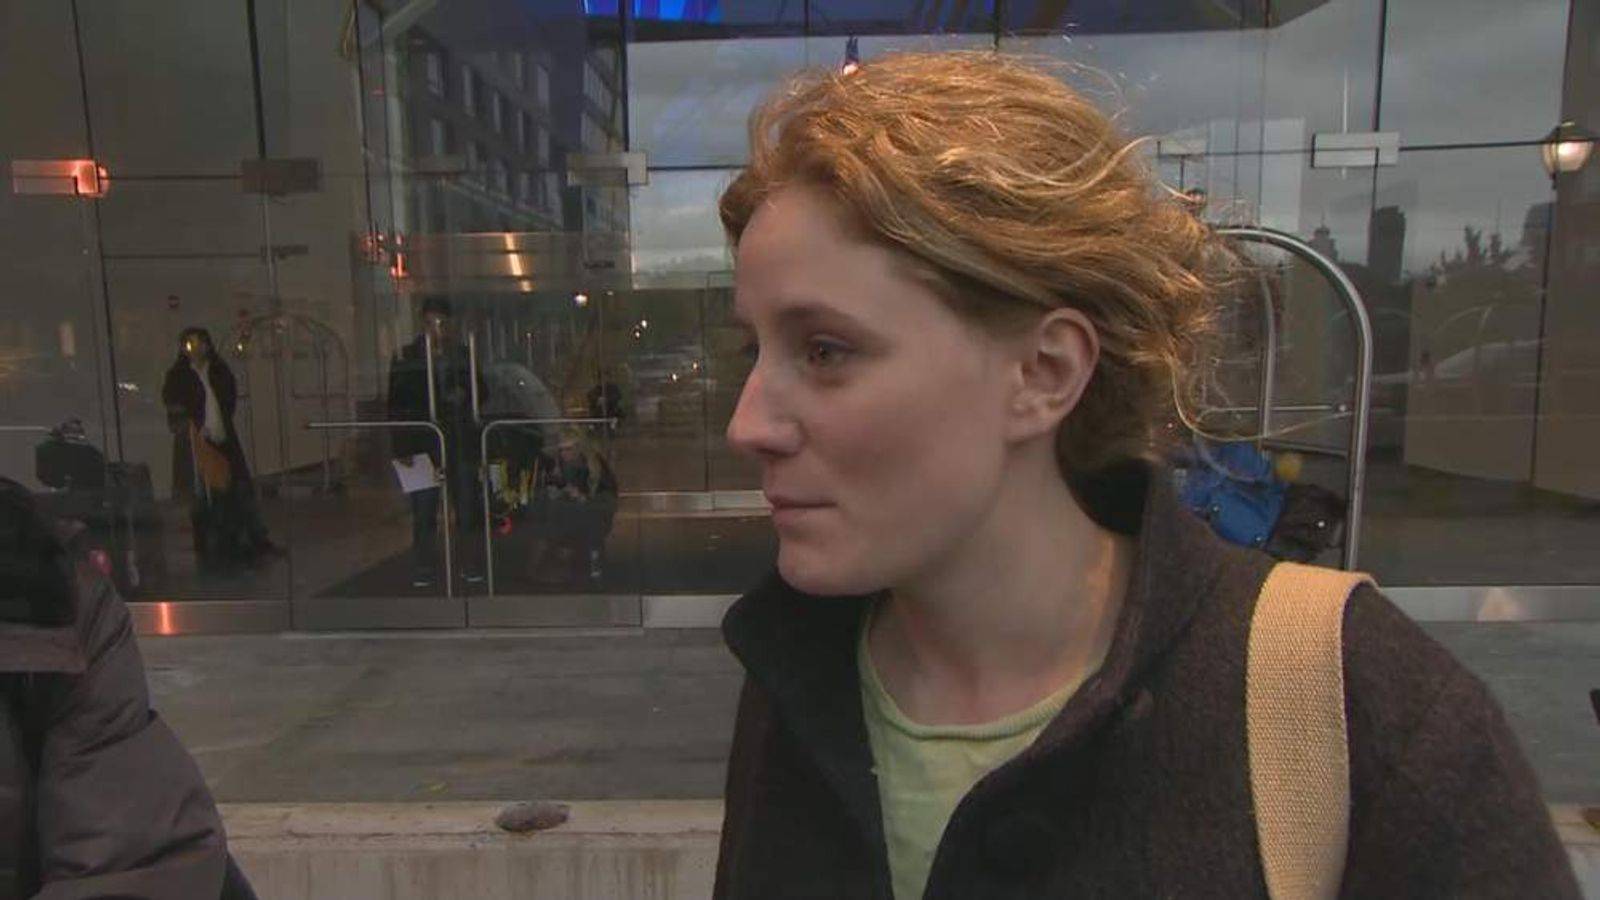 British tourist Alanna Pentlow is stranded in New York by Hurricane Sandy